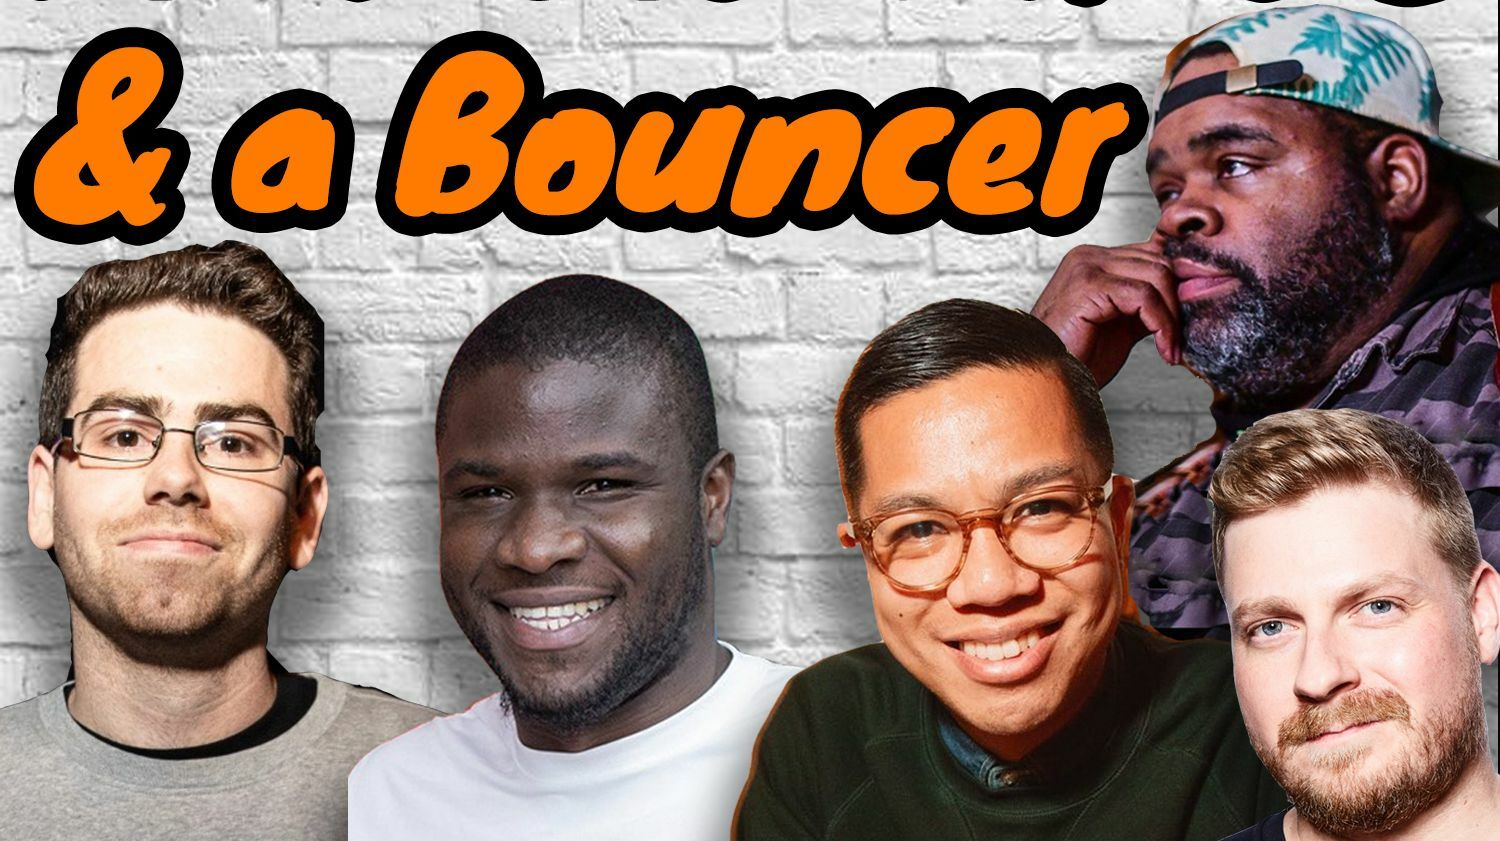 Four Comedians & a Bouncer! Live Stream Comedy Show